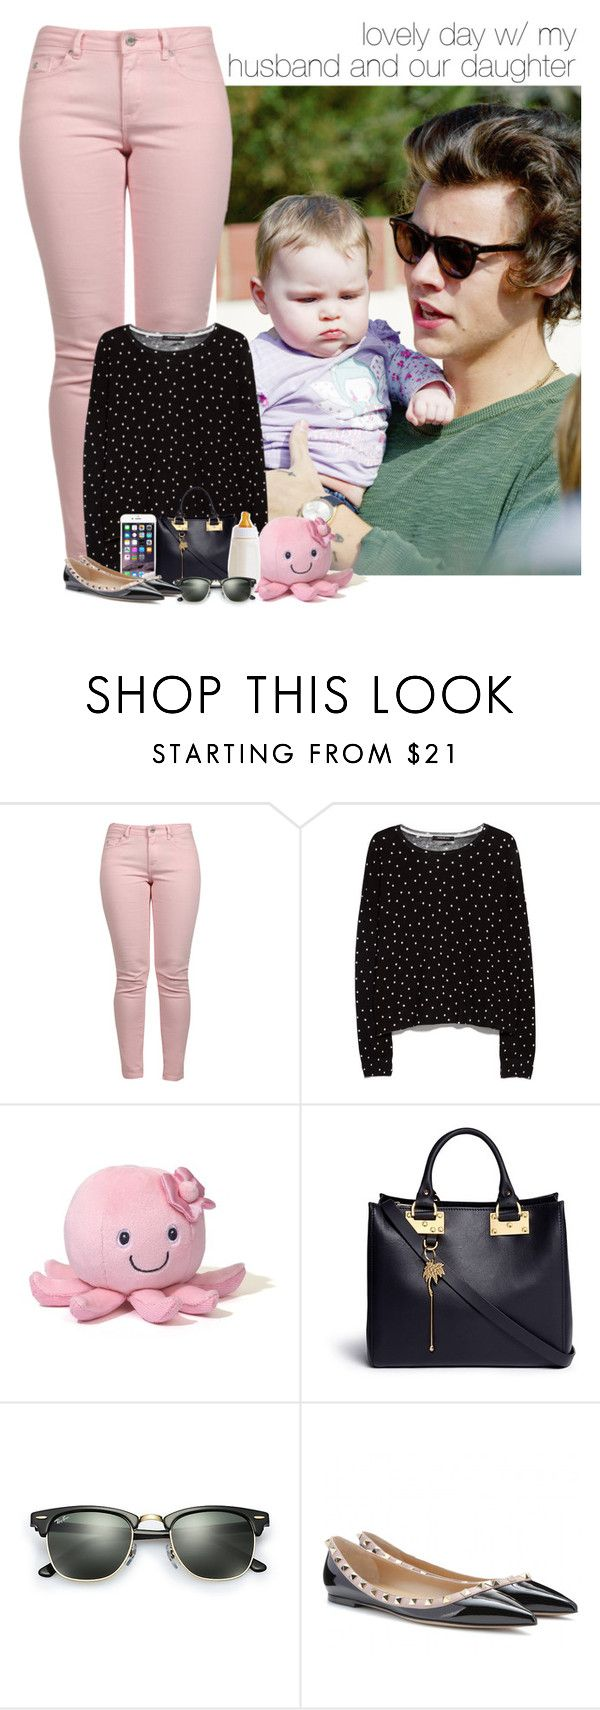 """""""lovely day with my husband and our daughter"""" by dipx1d ❤ liked on Polyvore featuring Maison Scotch, MANGO, Gund, Sophie Hulme and Ray-Ban"""